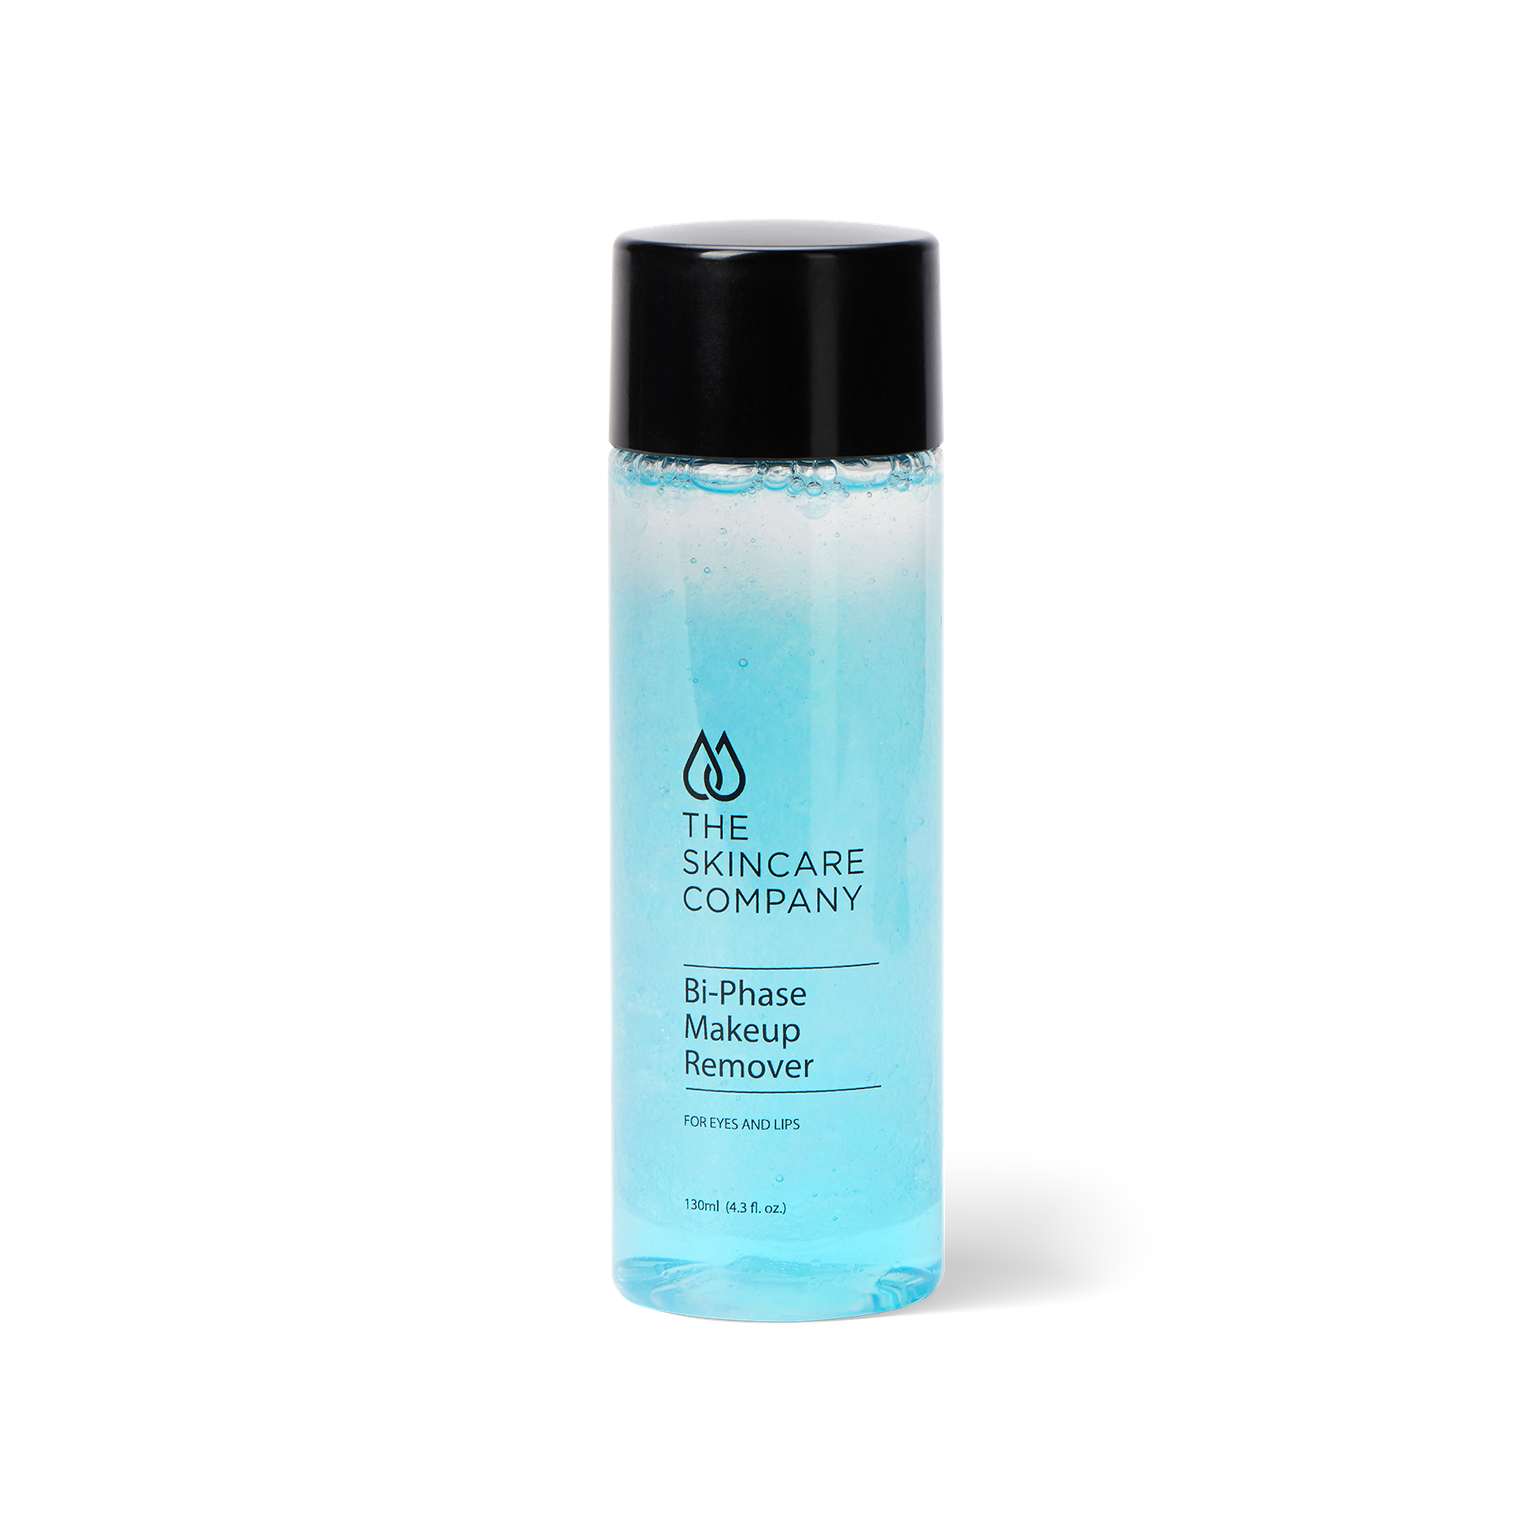 The Face Bi-Phase Makeup Remover